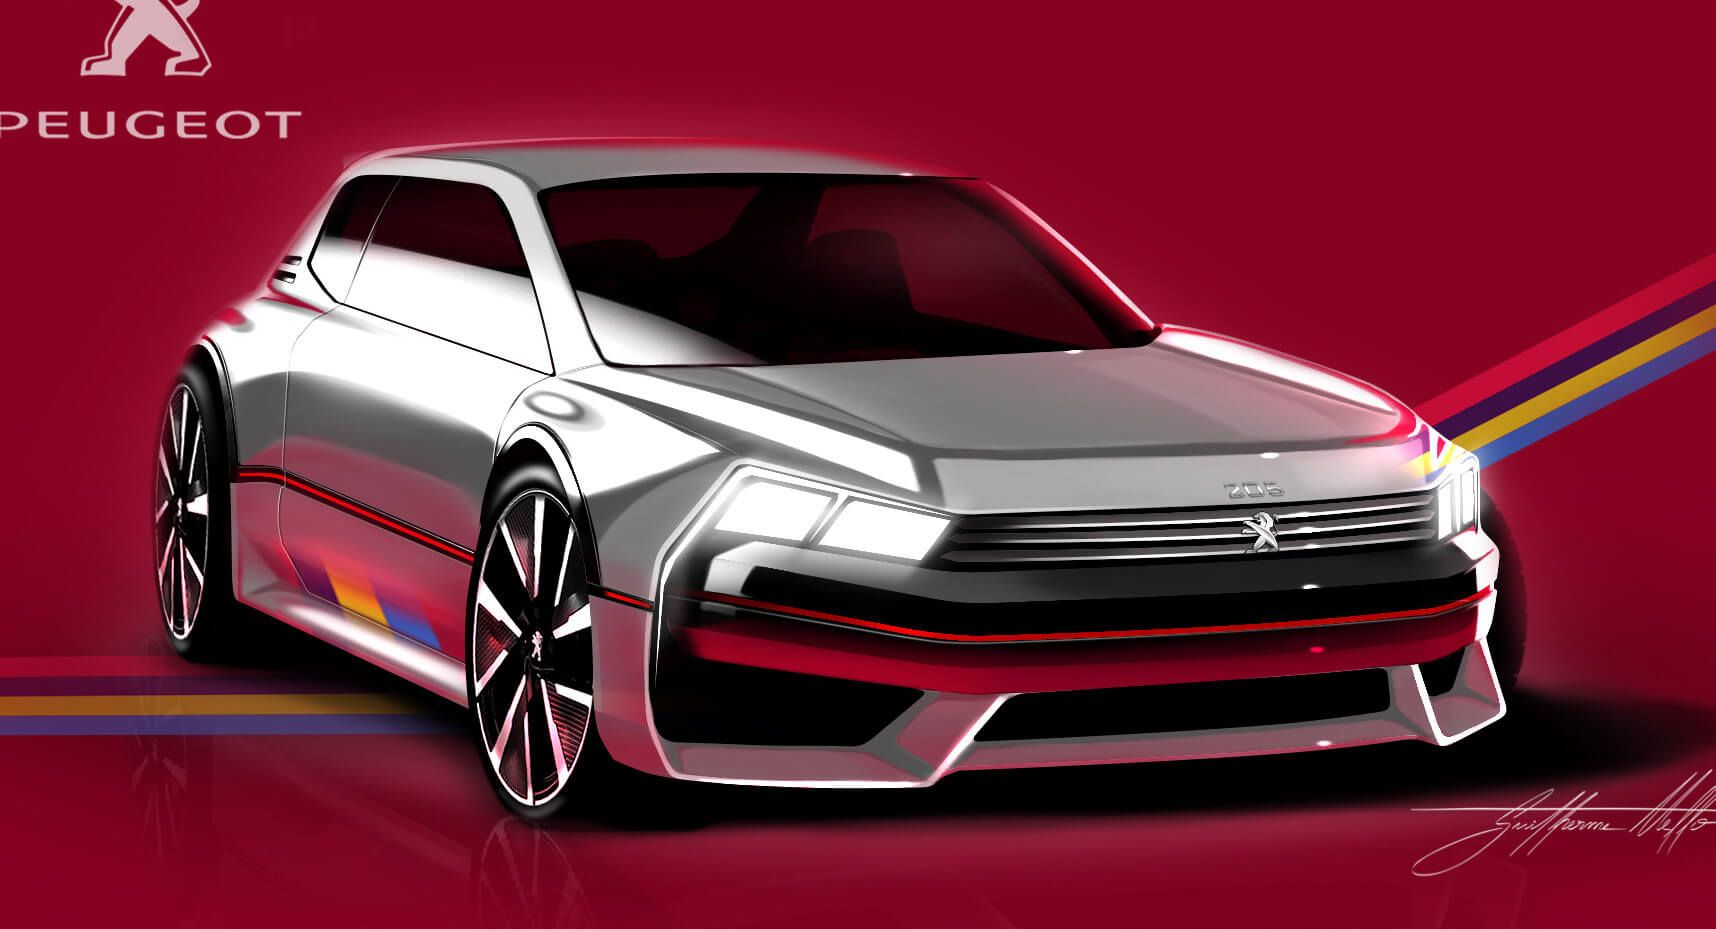 Peugeot CEO JeanPhilippe Imparato said that they're